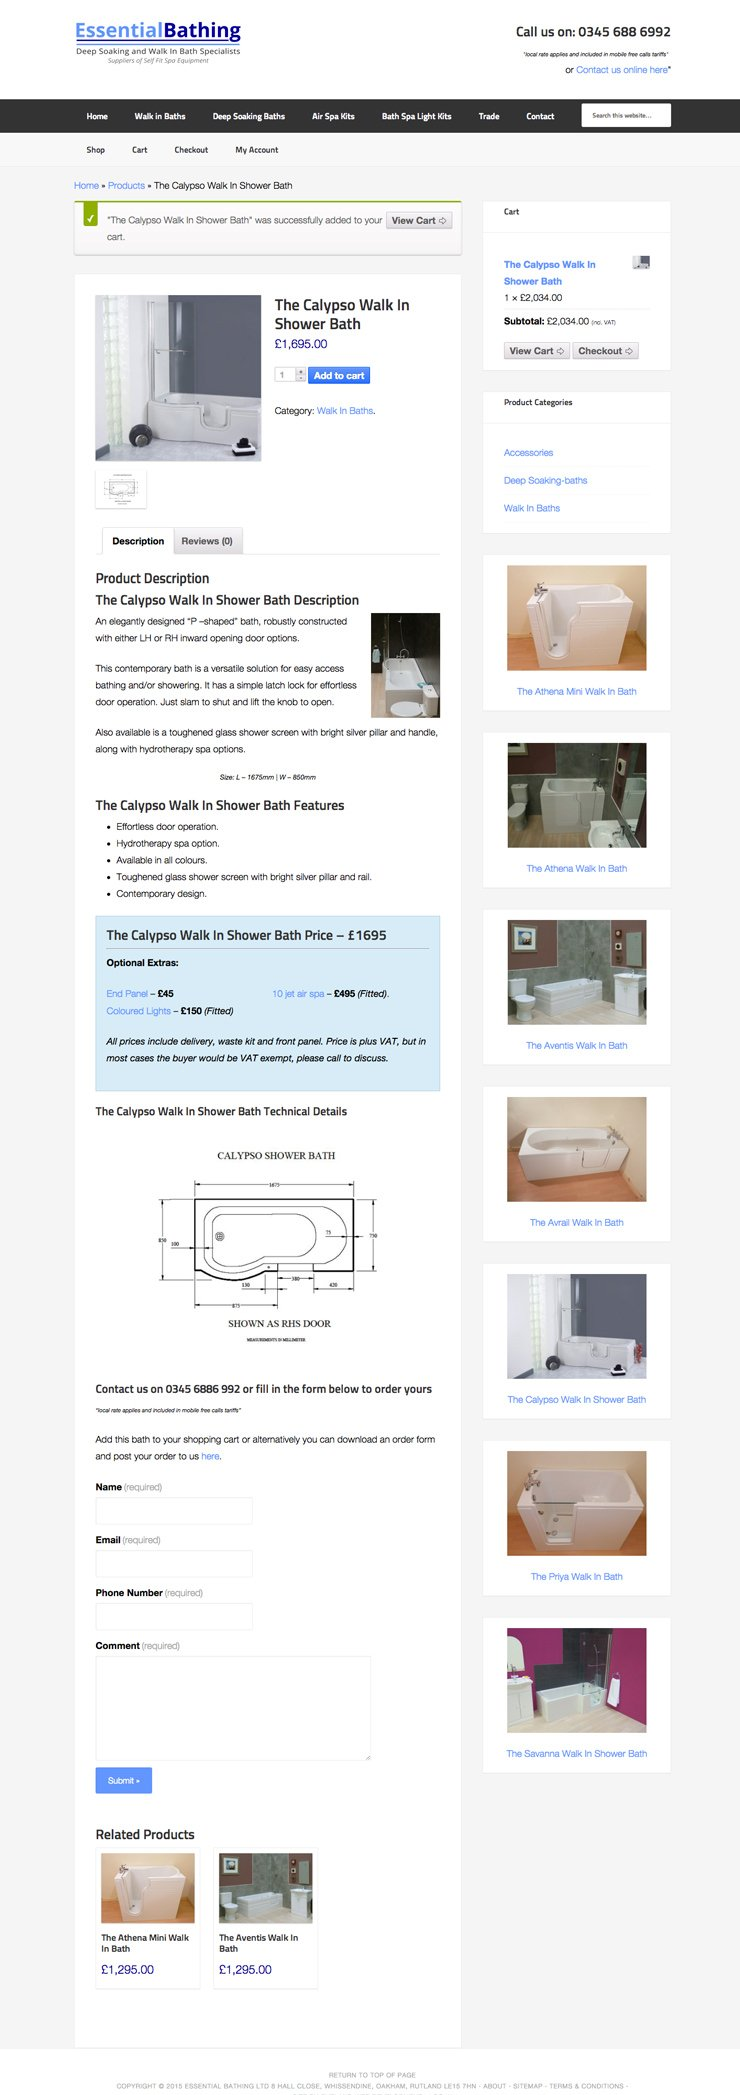 Essential Bathing LTD 3 by Rutland Web 2014